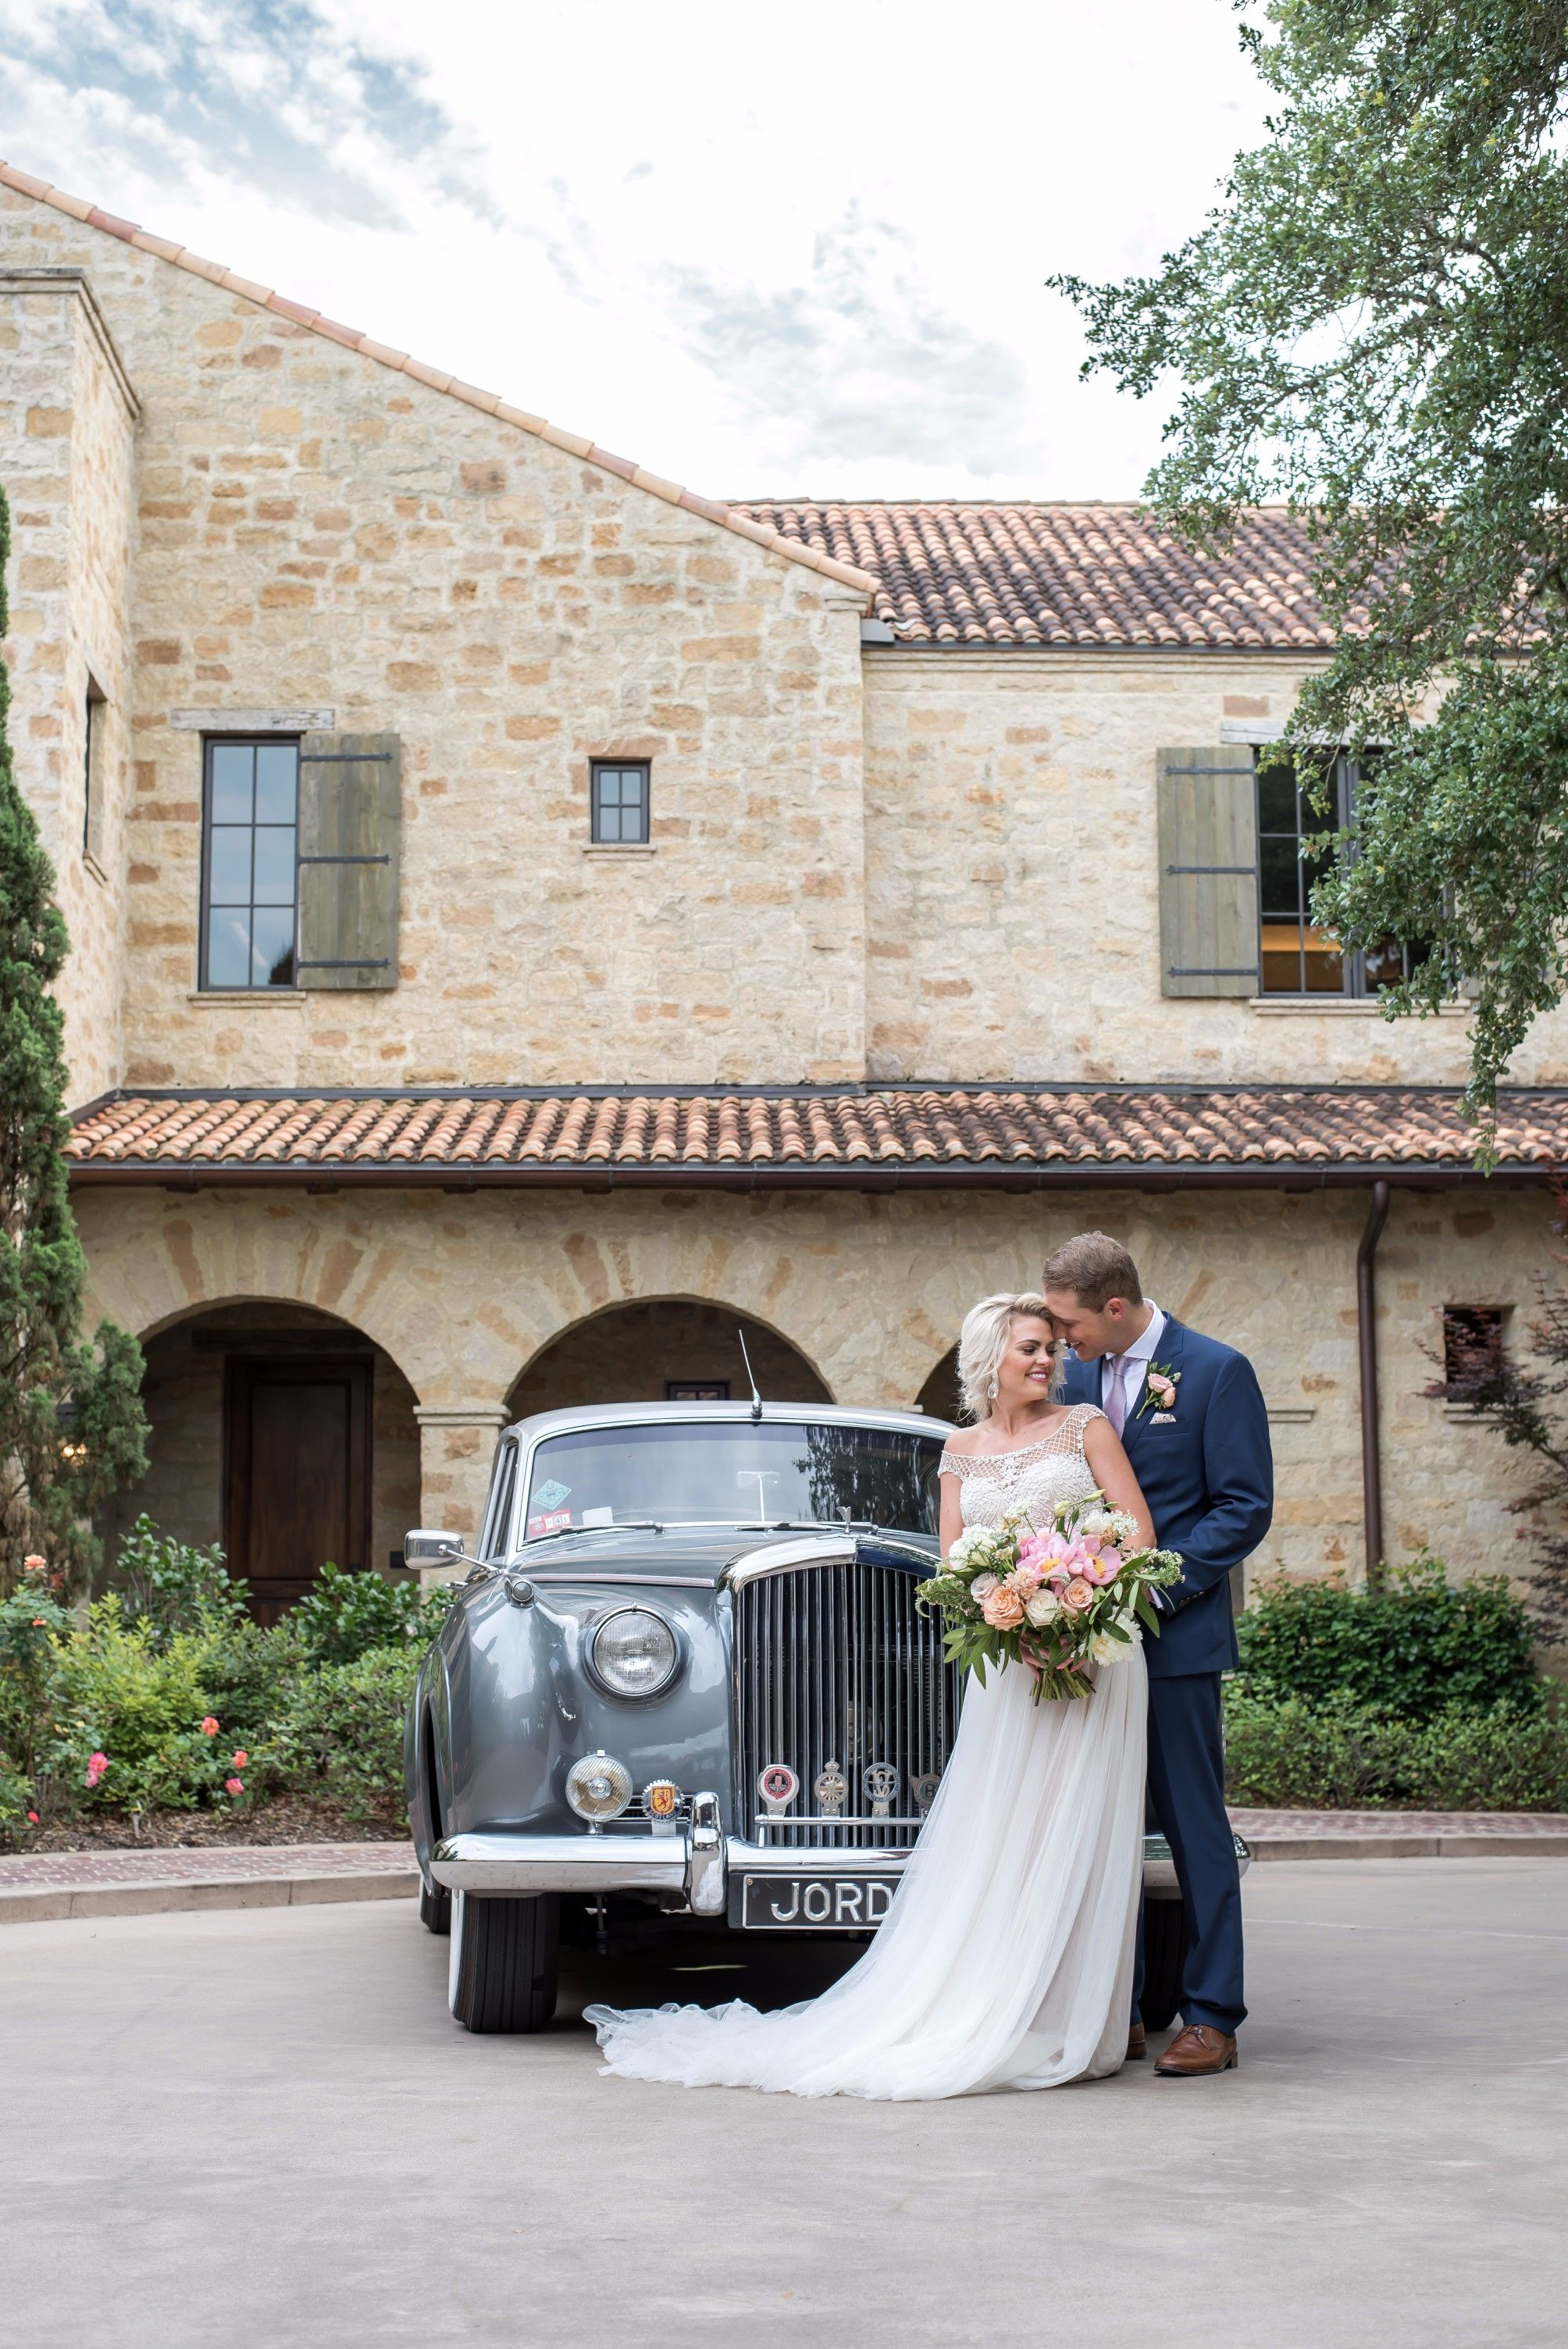 Wedding venue The Clubs at Houston Oaks, Texas (With